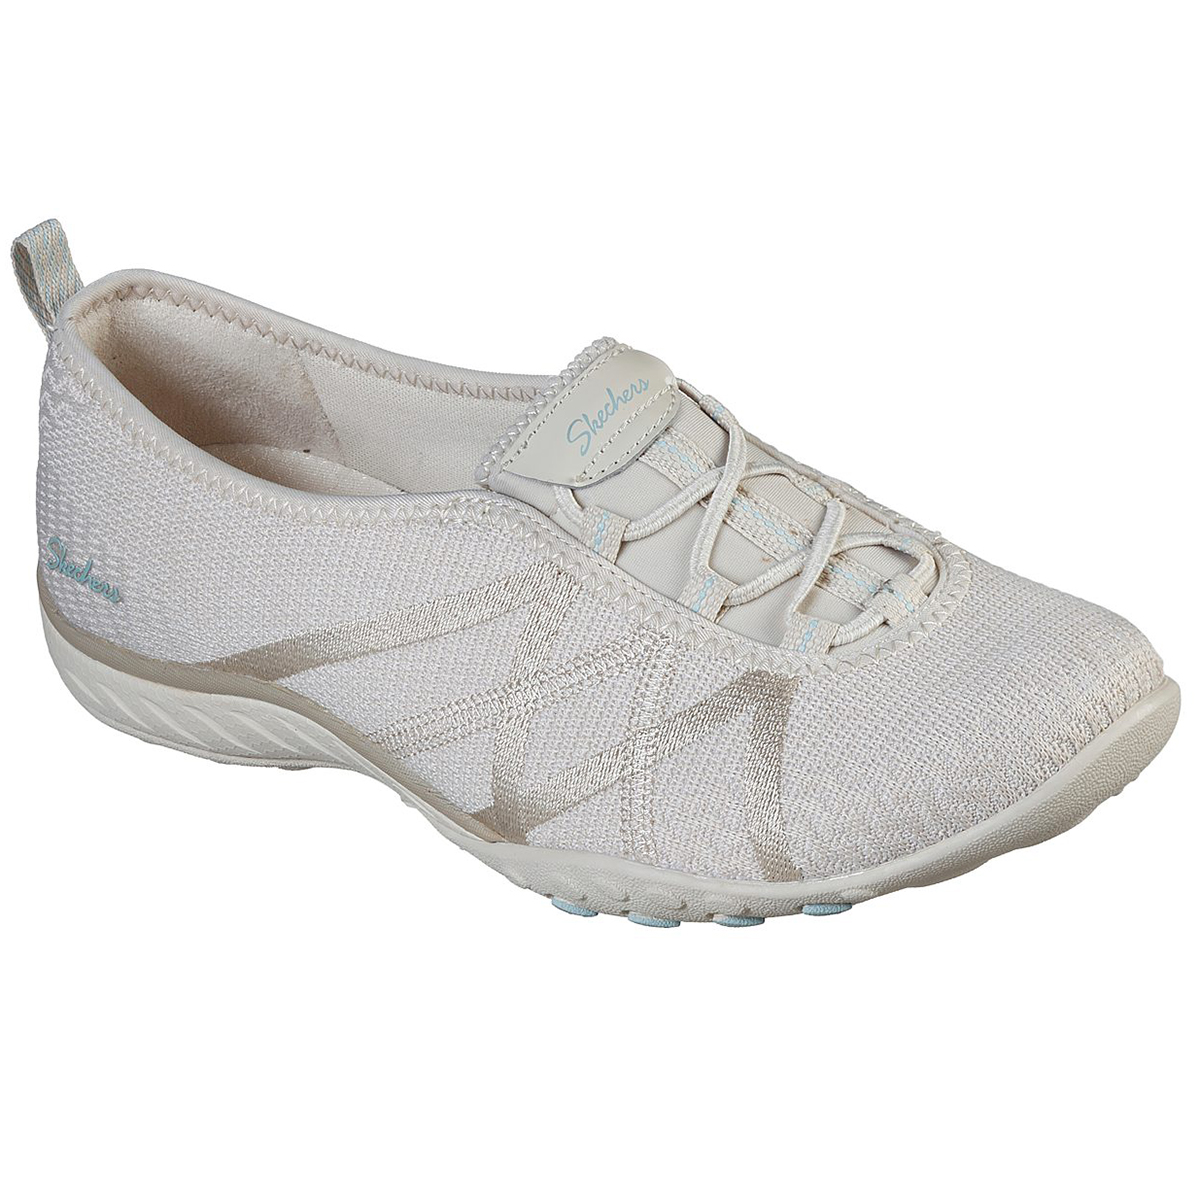 Skechers Women's Relaxed Fit: Breathe-Easy-A-Look Sneaker - White, 7